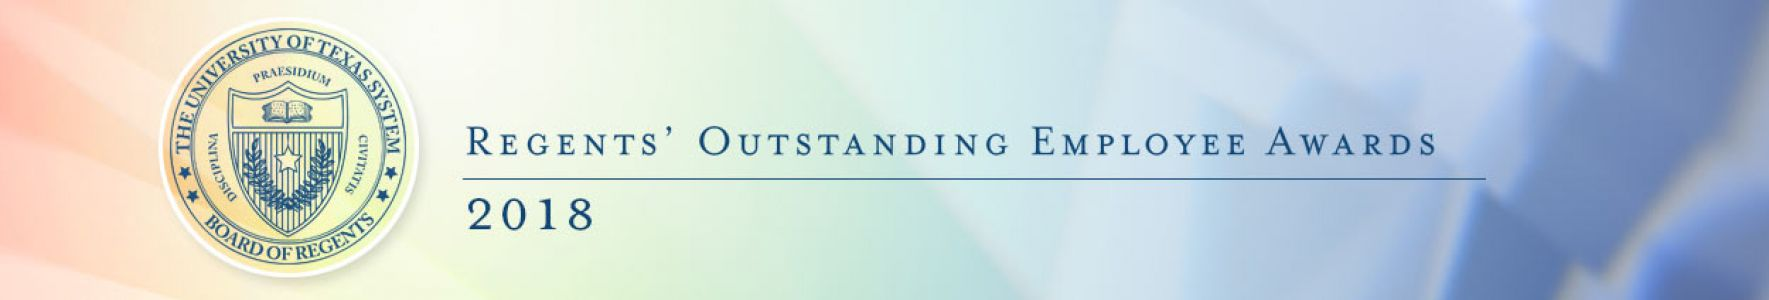 text: Regents' Outstanding Employee Awards 2018.  Header image with text and Board seal on a colored background